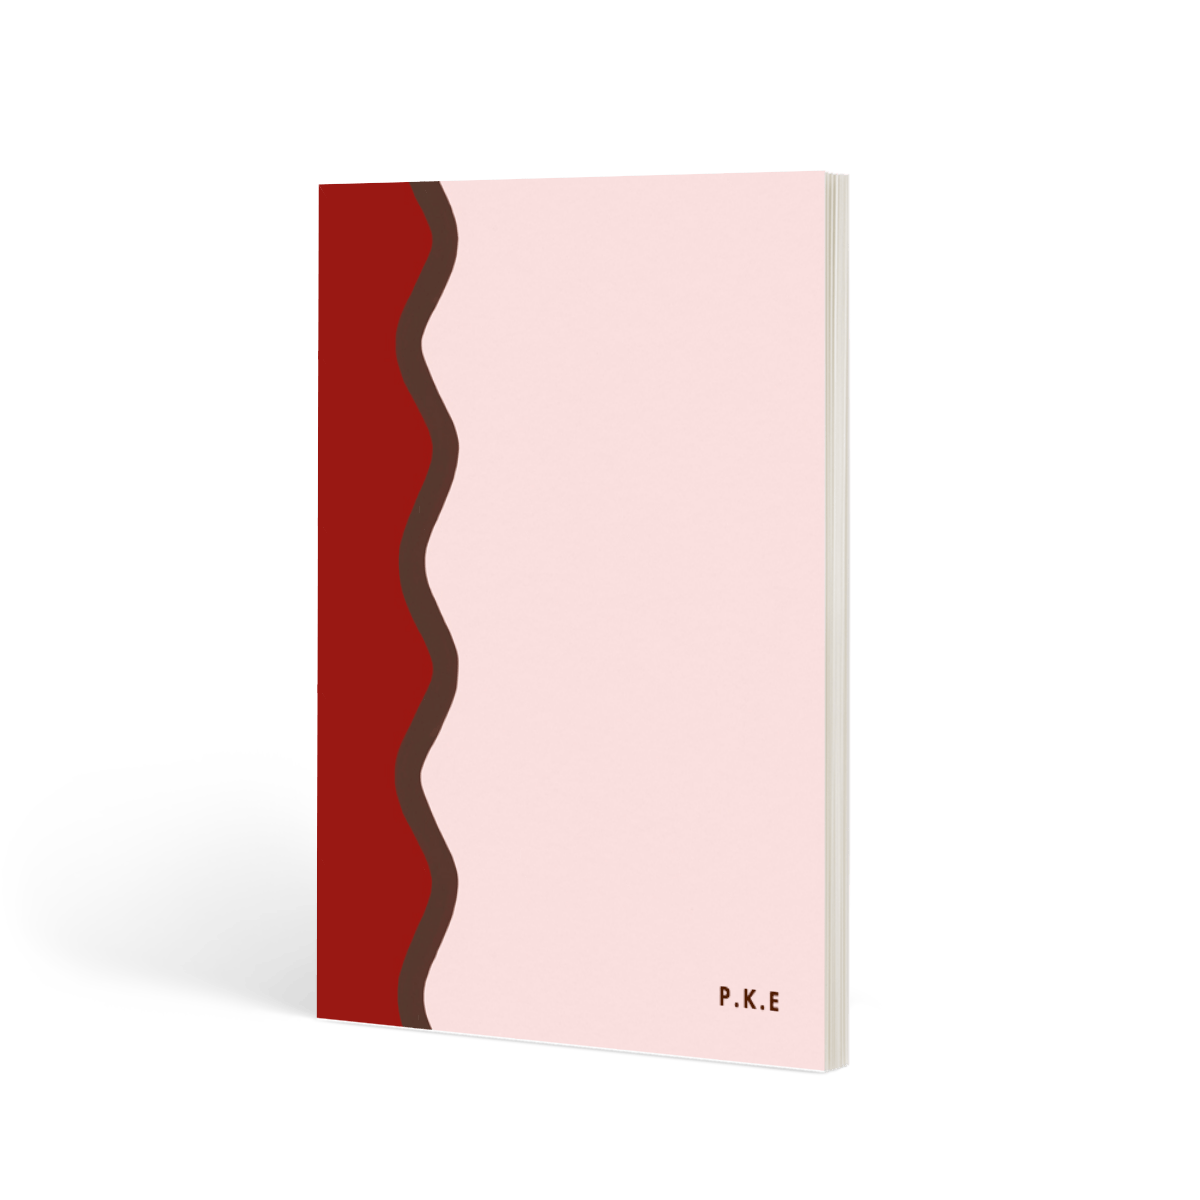 Https%3a%2f%2fwww.papier.com%2fproduct image%2f76162%2f41%2fscallop spine 17866 front 1558005532.png?ixlib=rb 1.1